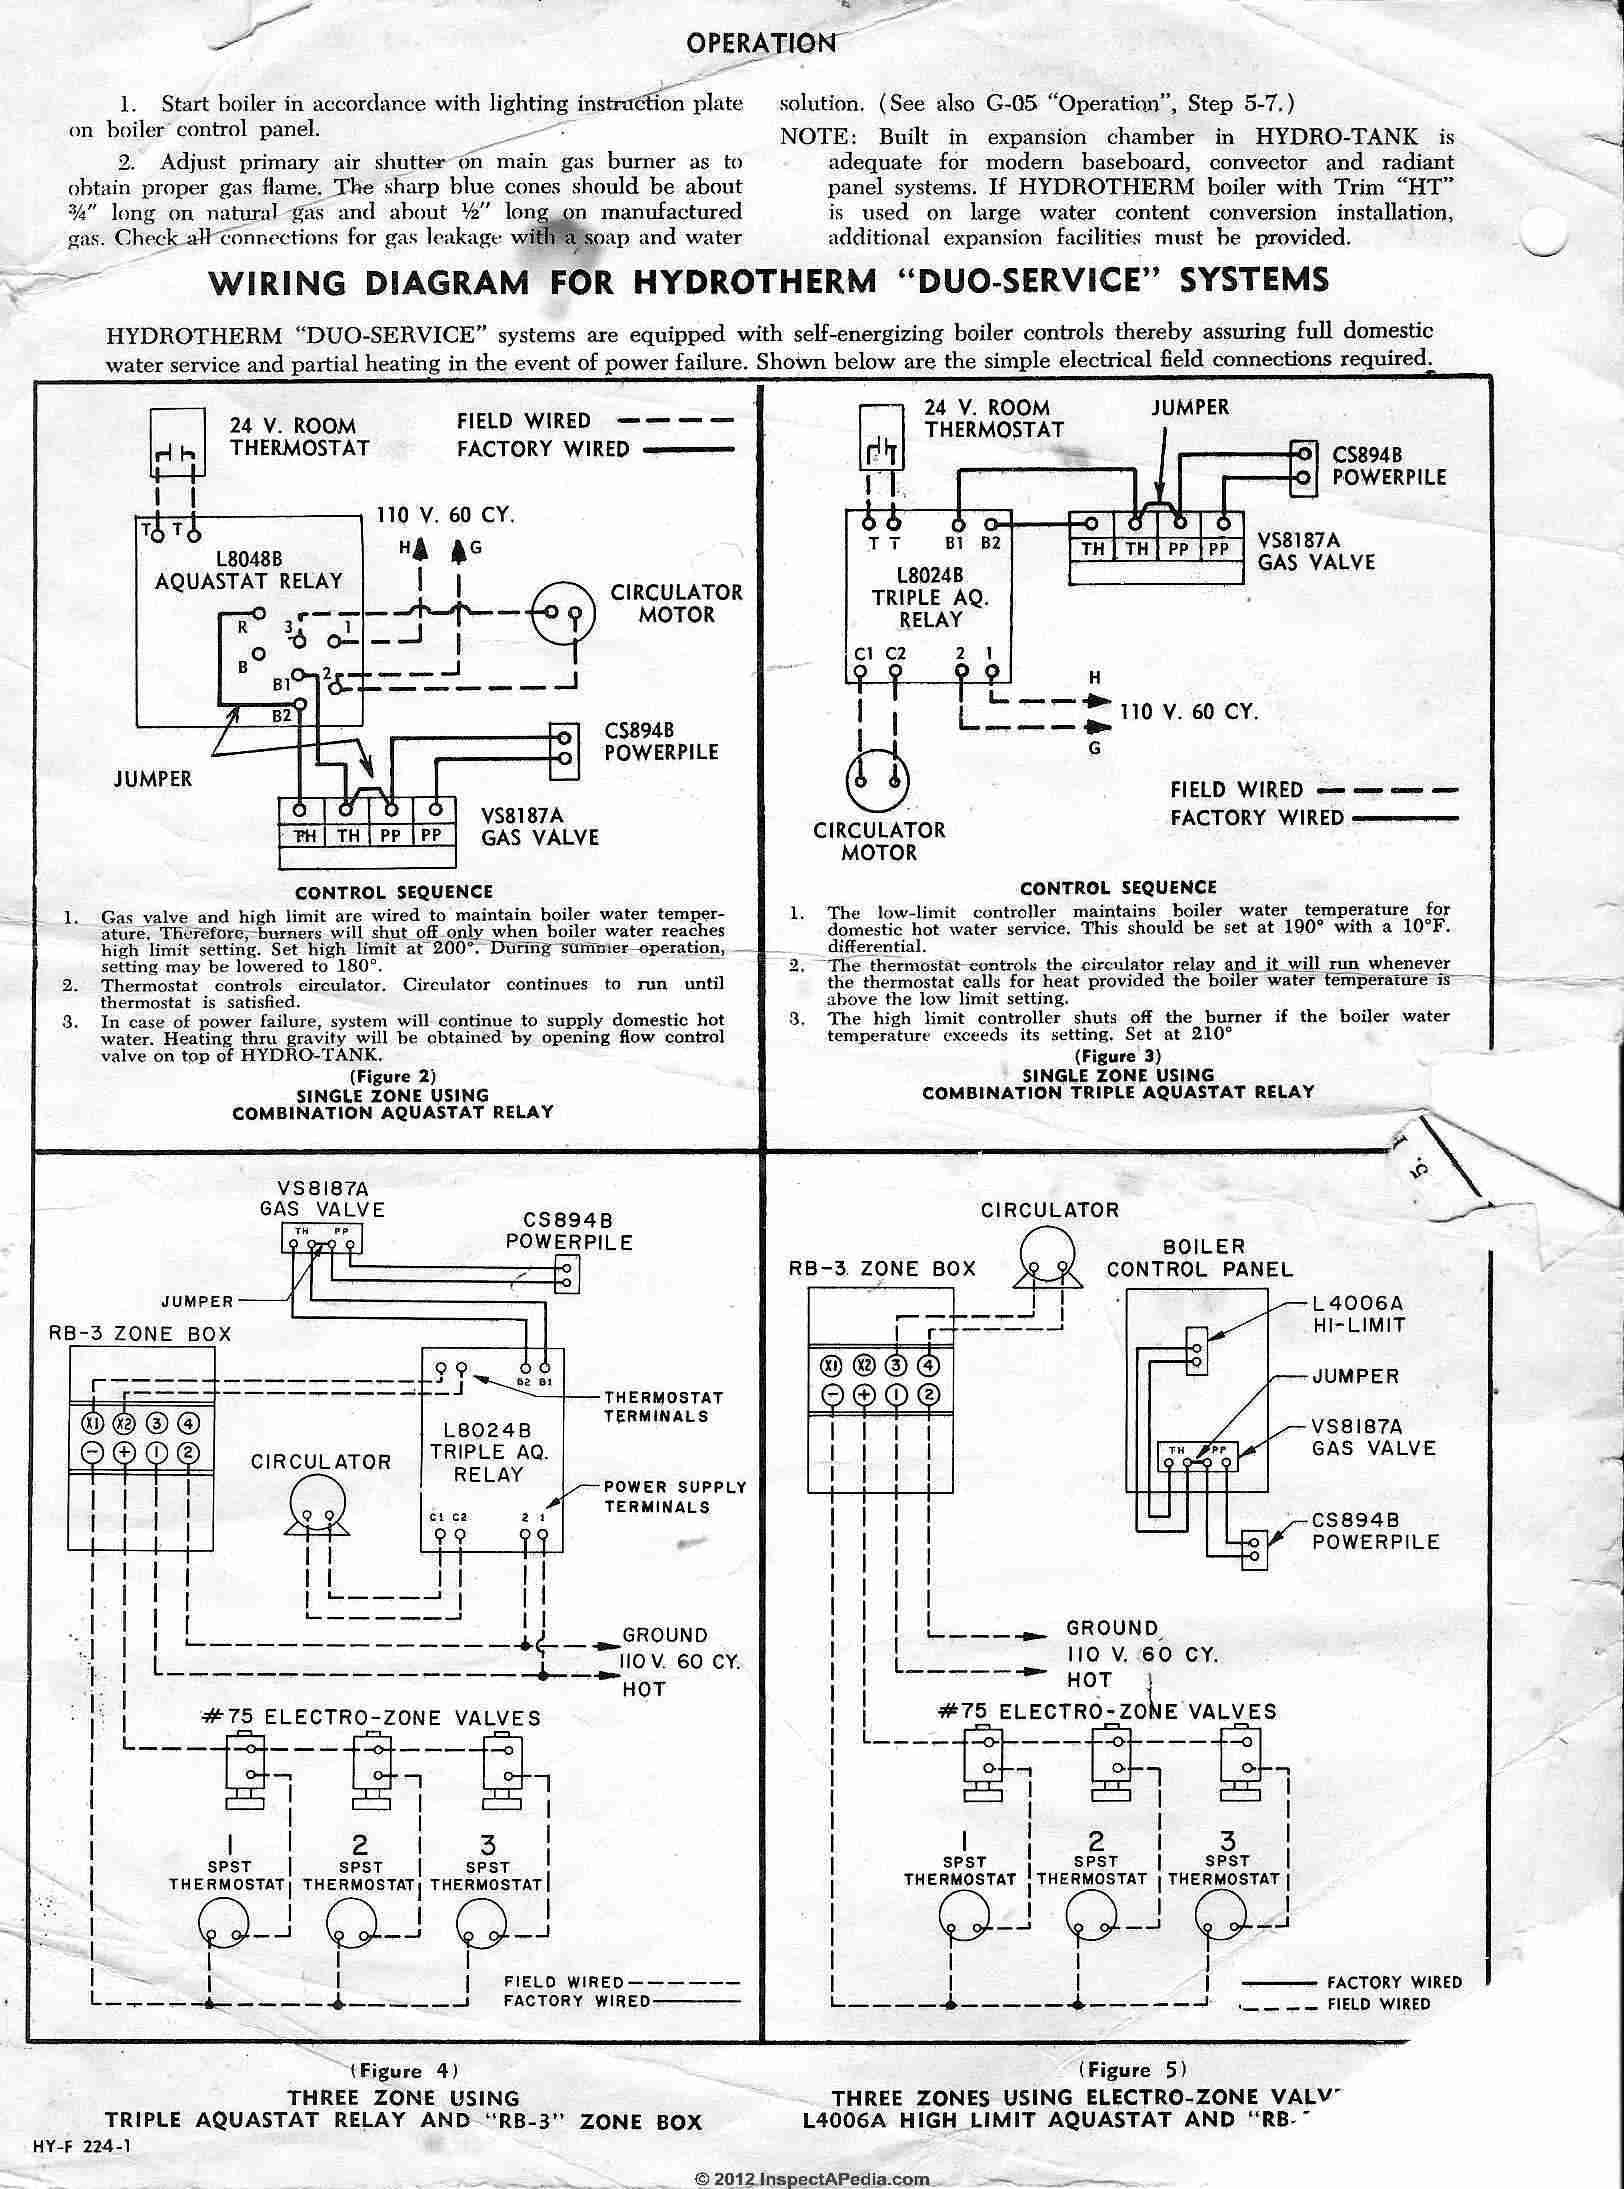 heating boiler aquastat control diagnosis, troubleshooting ... dunkirk boiler wiring diagram